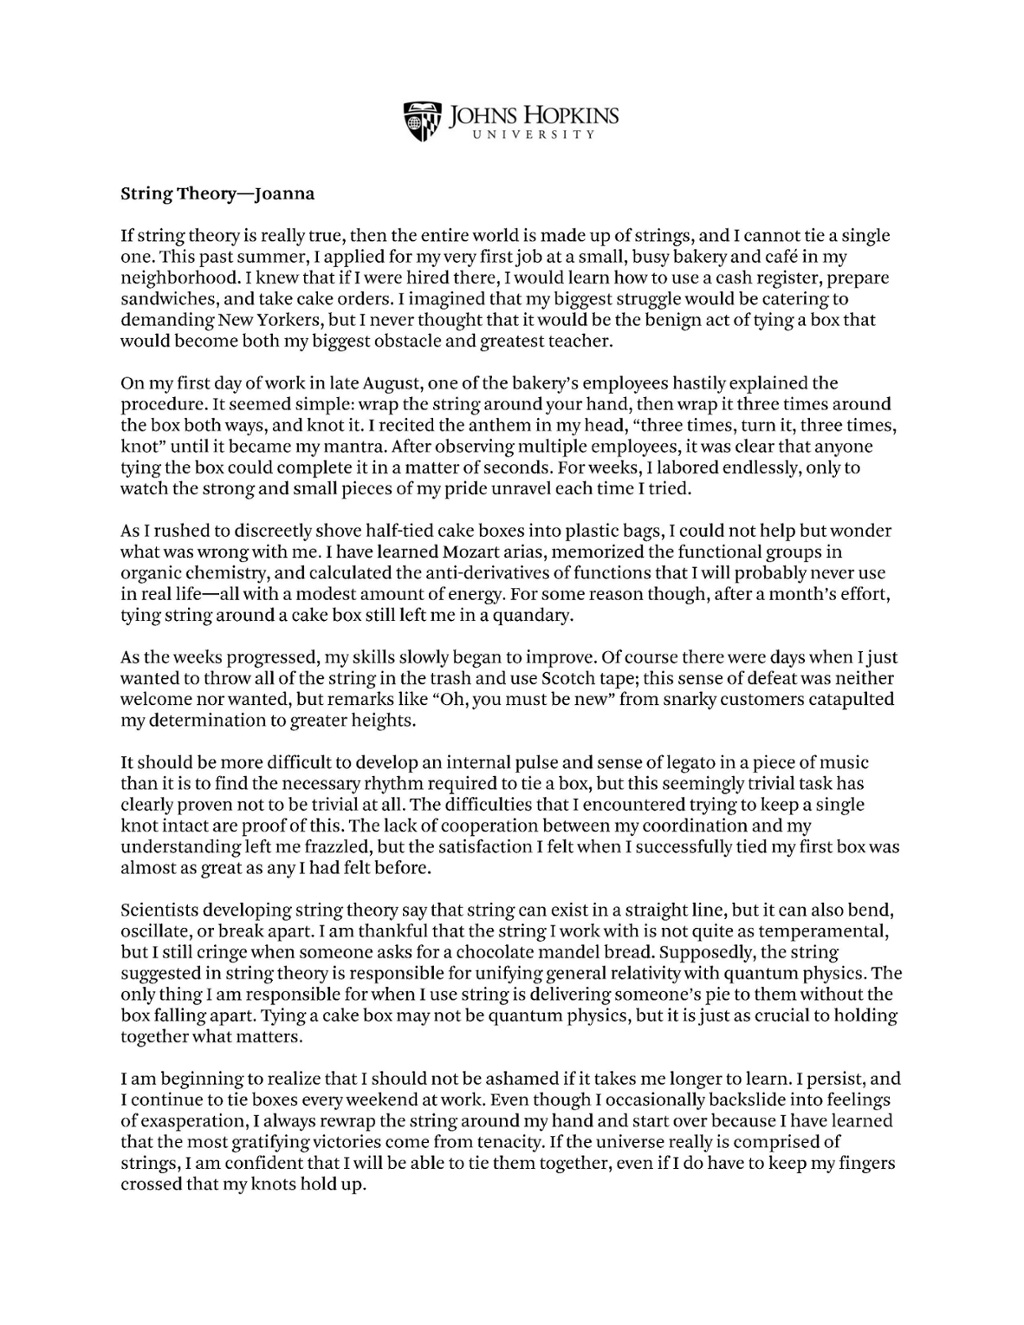 essay on the importance of being yourself I believe that being true to yourself is something that is different for every person some people find below is an essay on being true to yourself from anti essays, your source for research papers, essays, and term paper examples self- confidence plays a huge role in our ability to be true to ourselves.